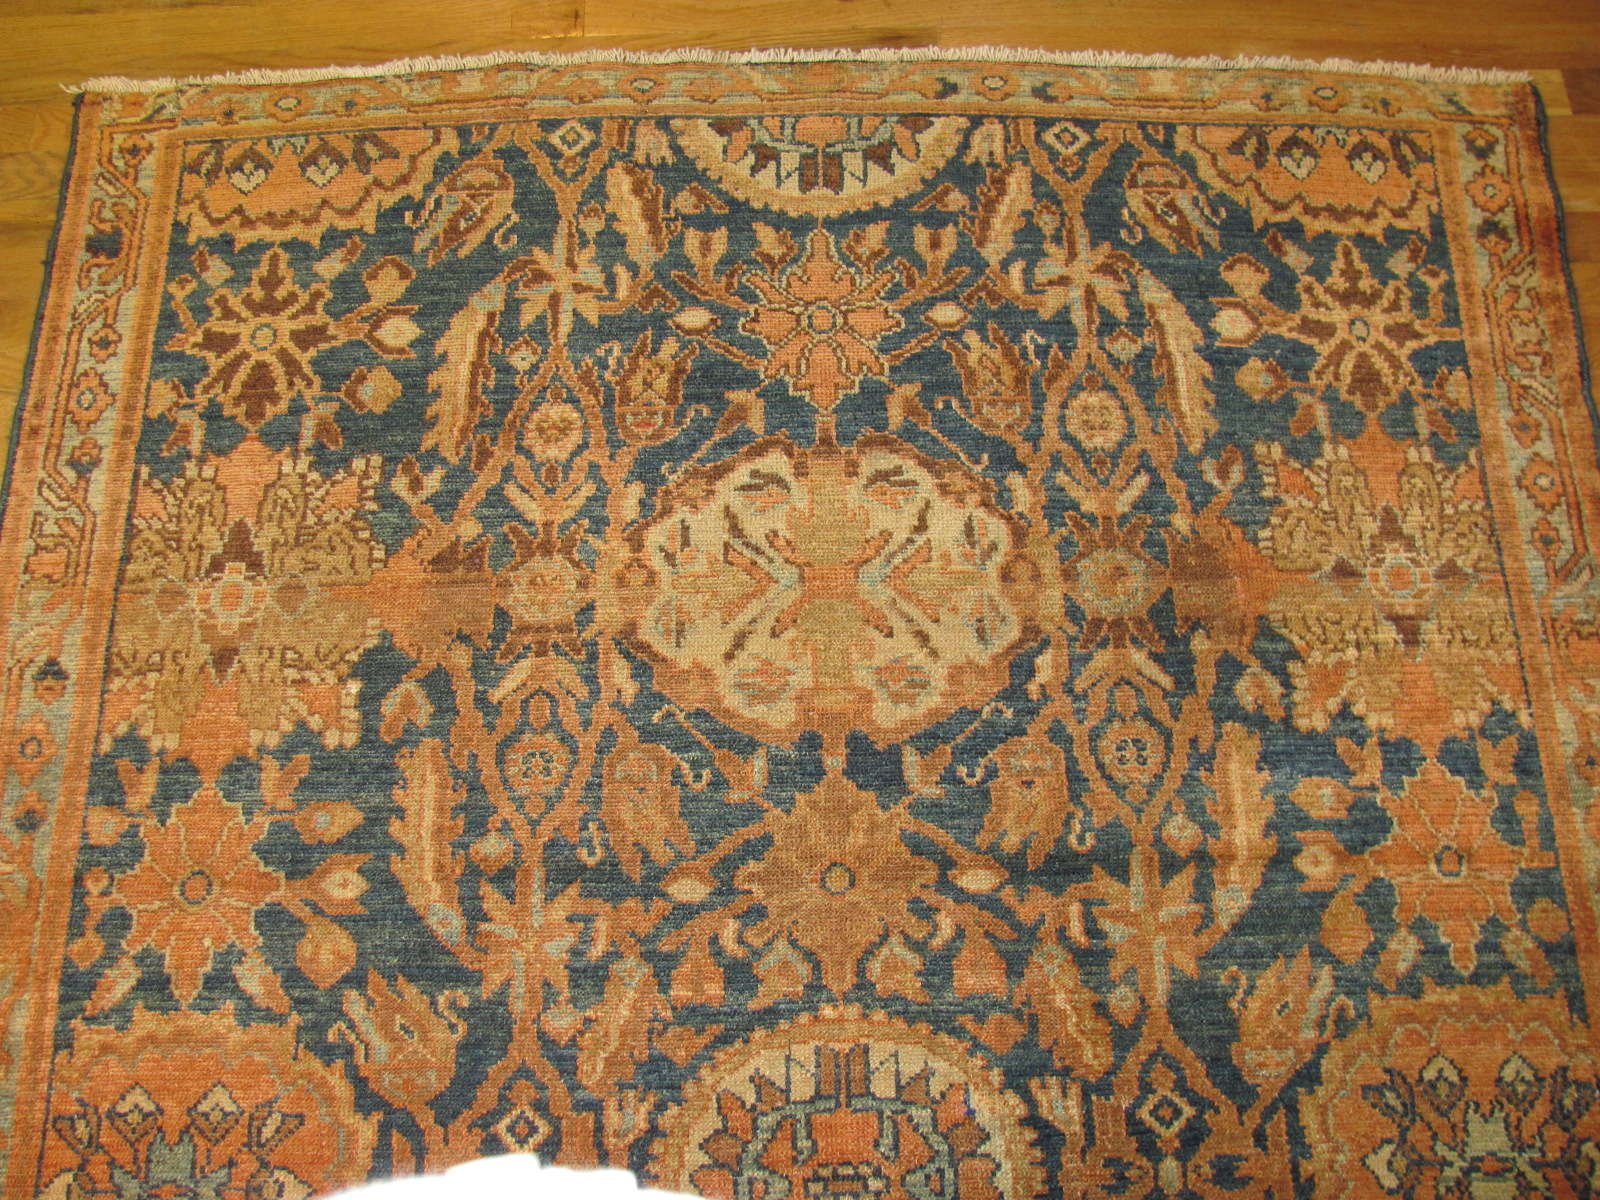 24539 antique persian malayer rug 4,9 x 7 -1